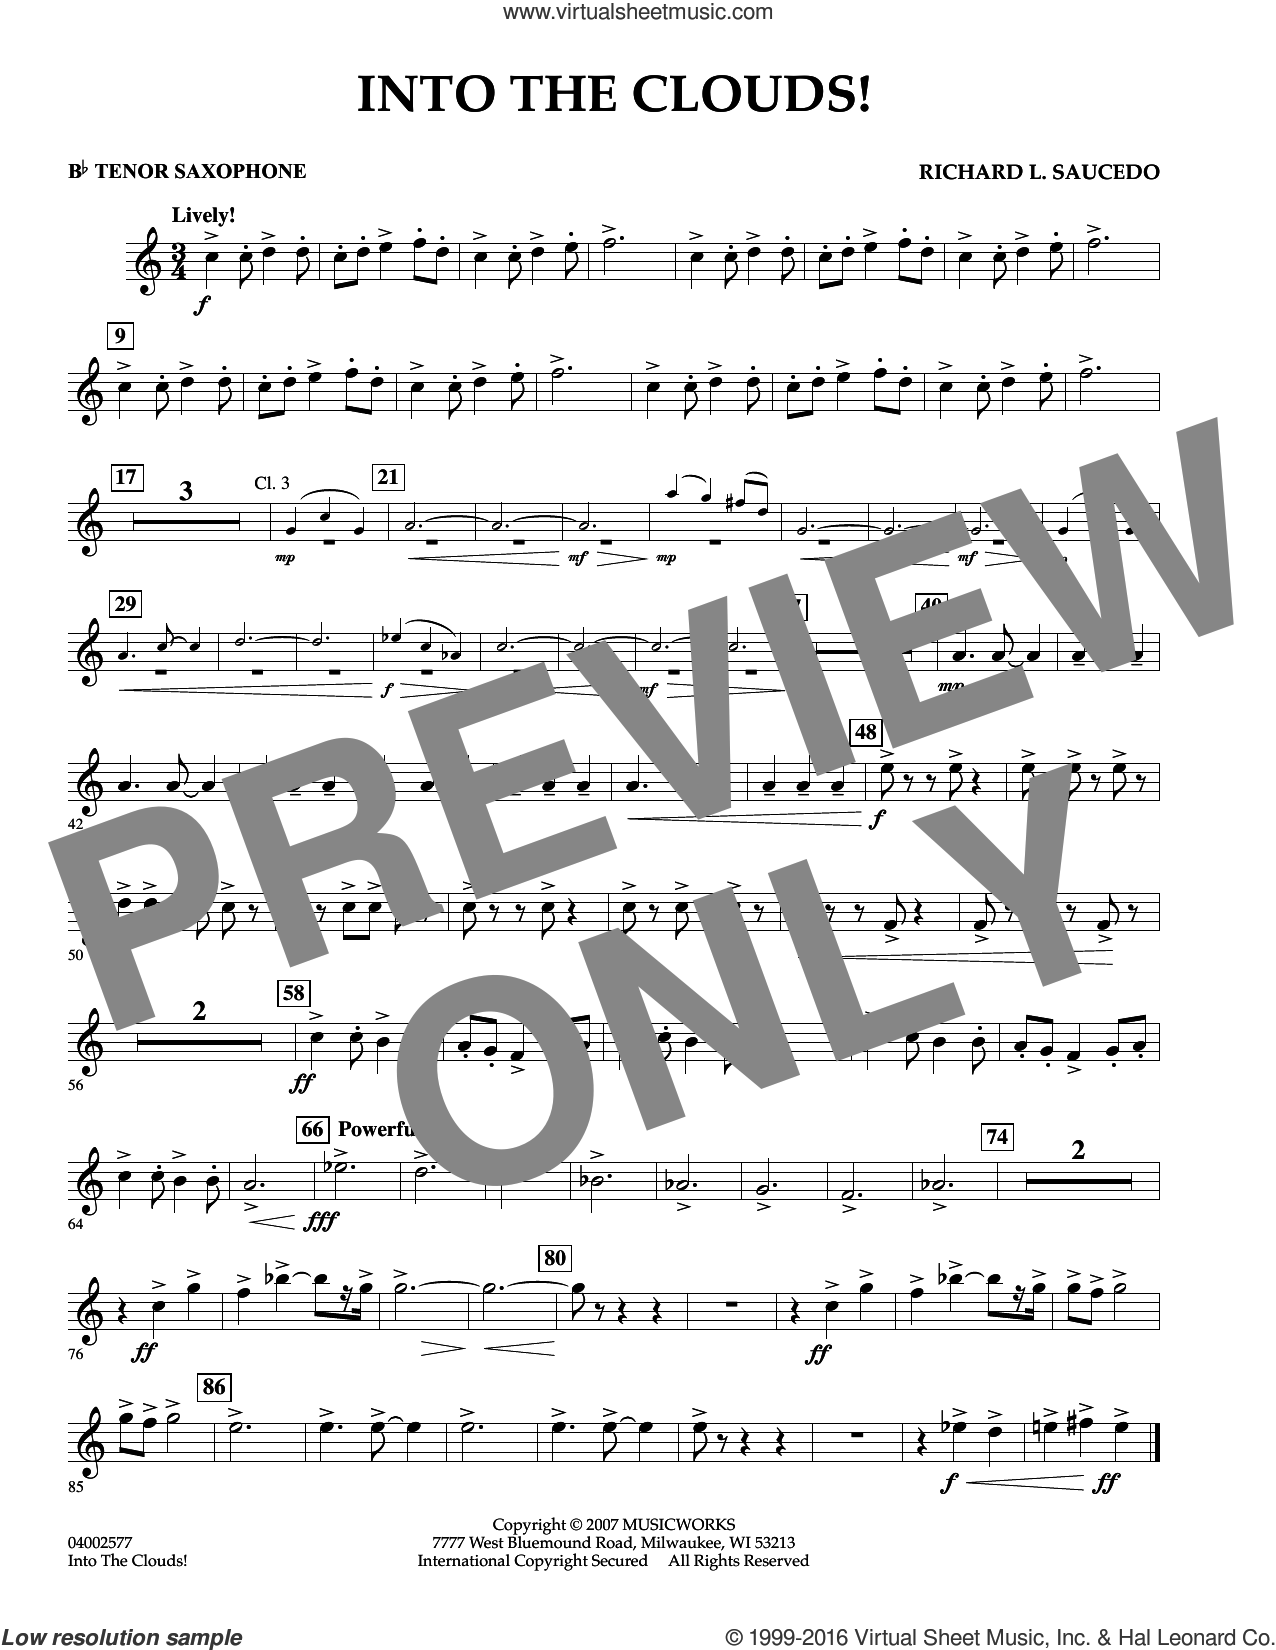 Into The Clouds!  W/cd sheet music for concert band (Bb tenor saxophone) by Richard L. Saucedo, intermediate skill level